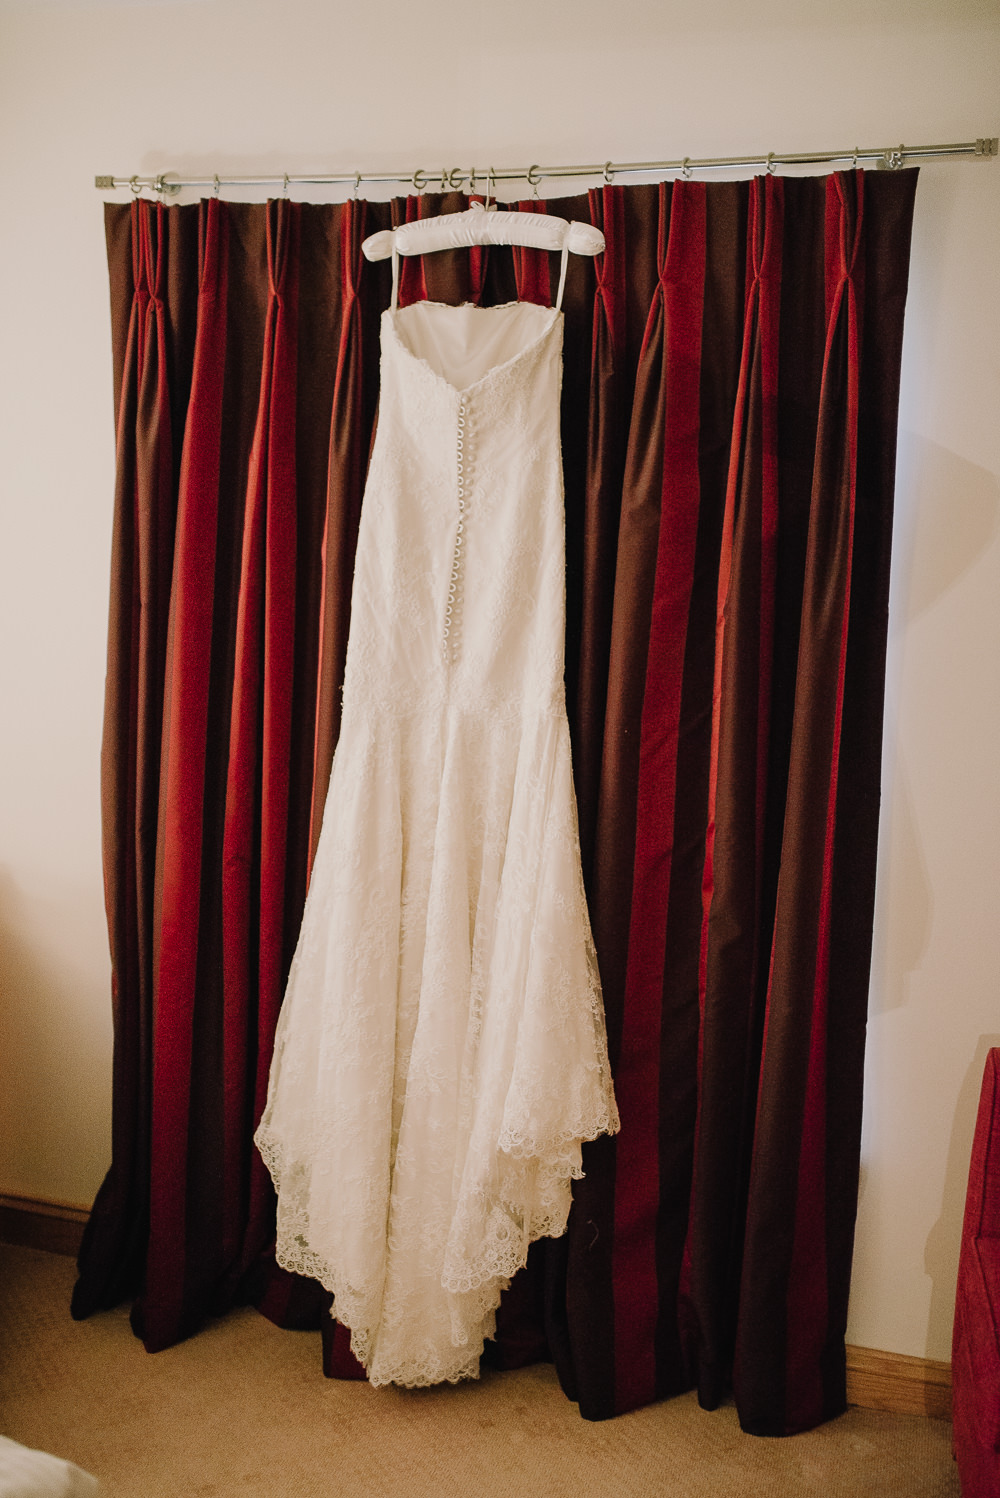 Vintage Wedding Dresses Peterborough : Suzanne neville lace antonia wedding dress and jenny